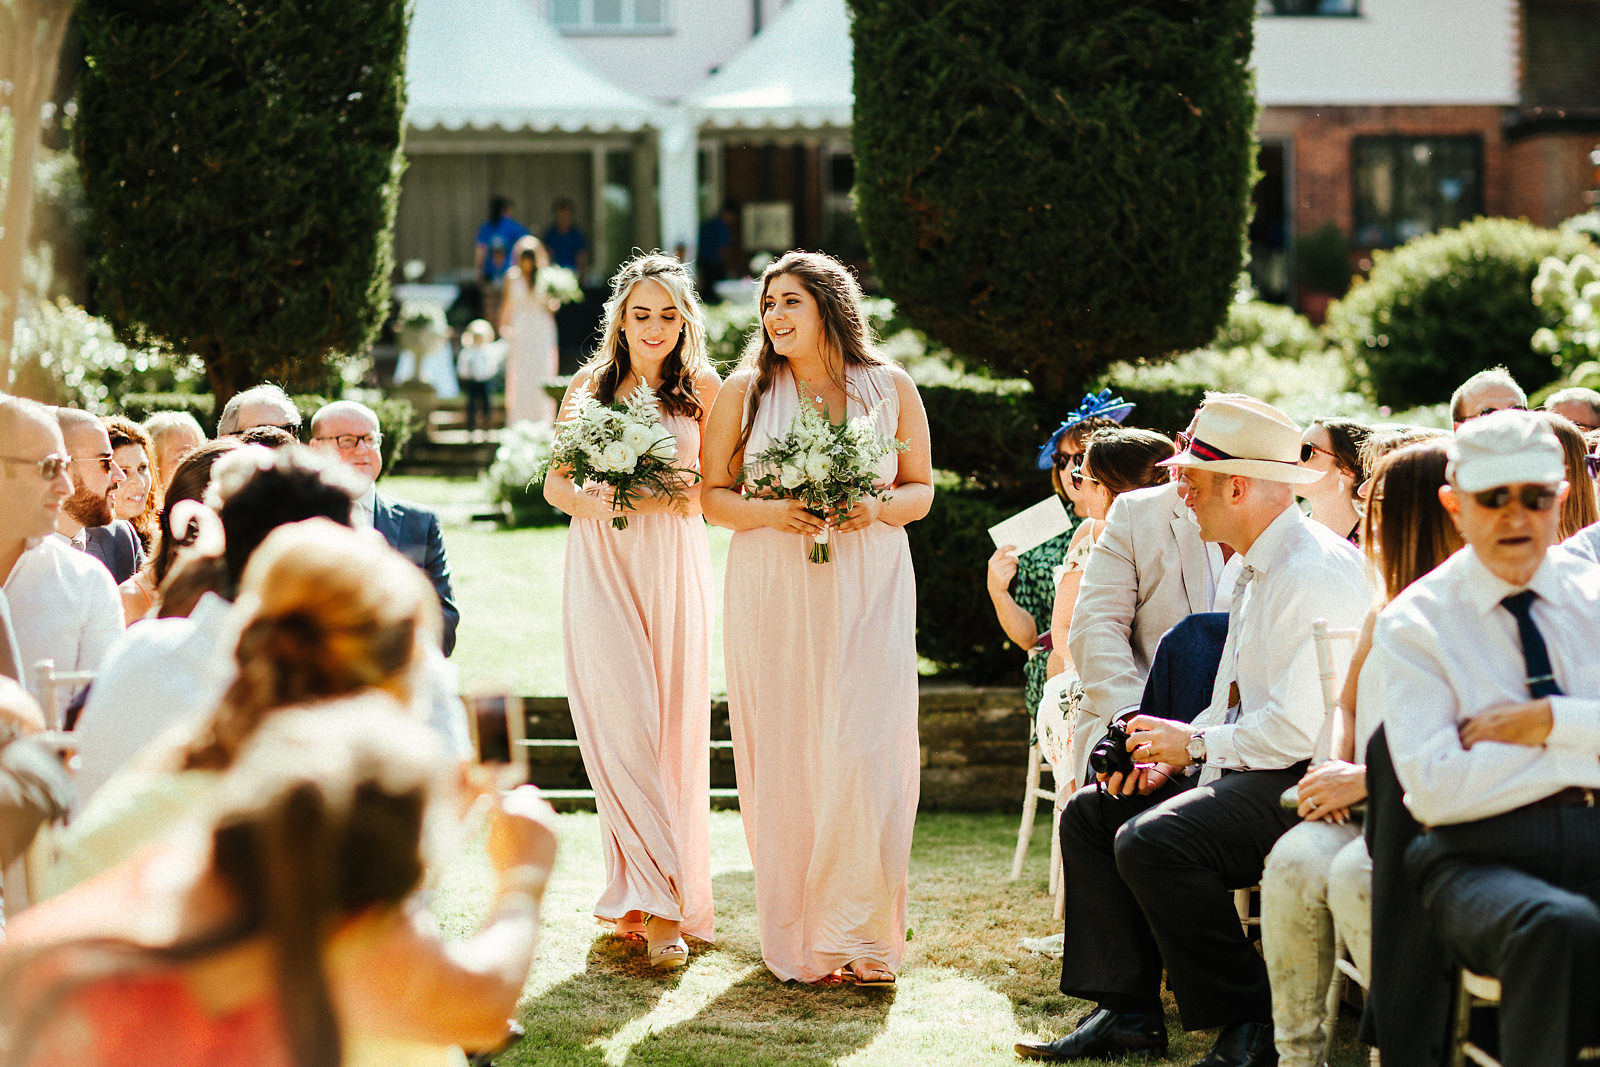 Arrival of bridesmaids